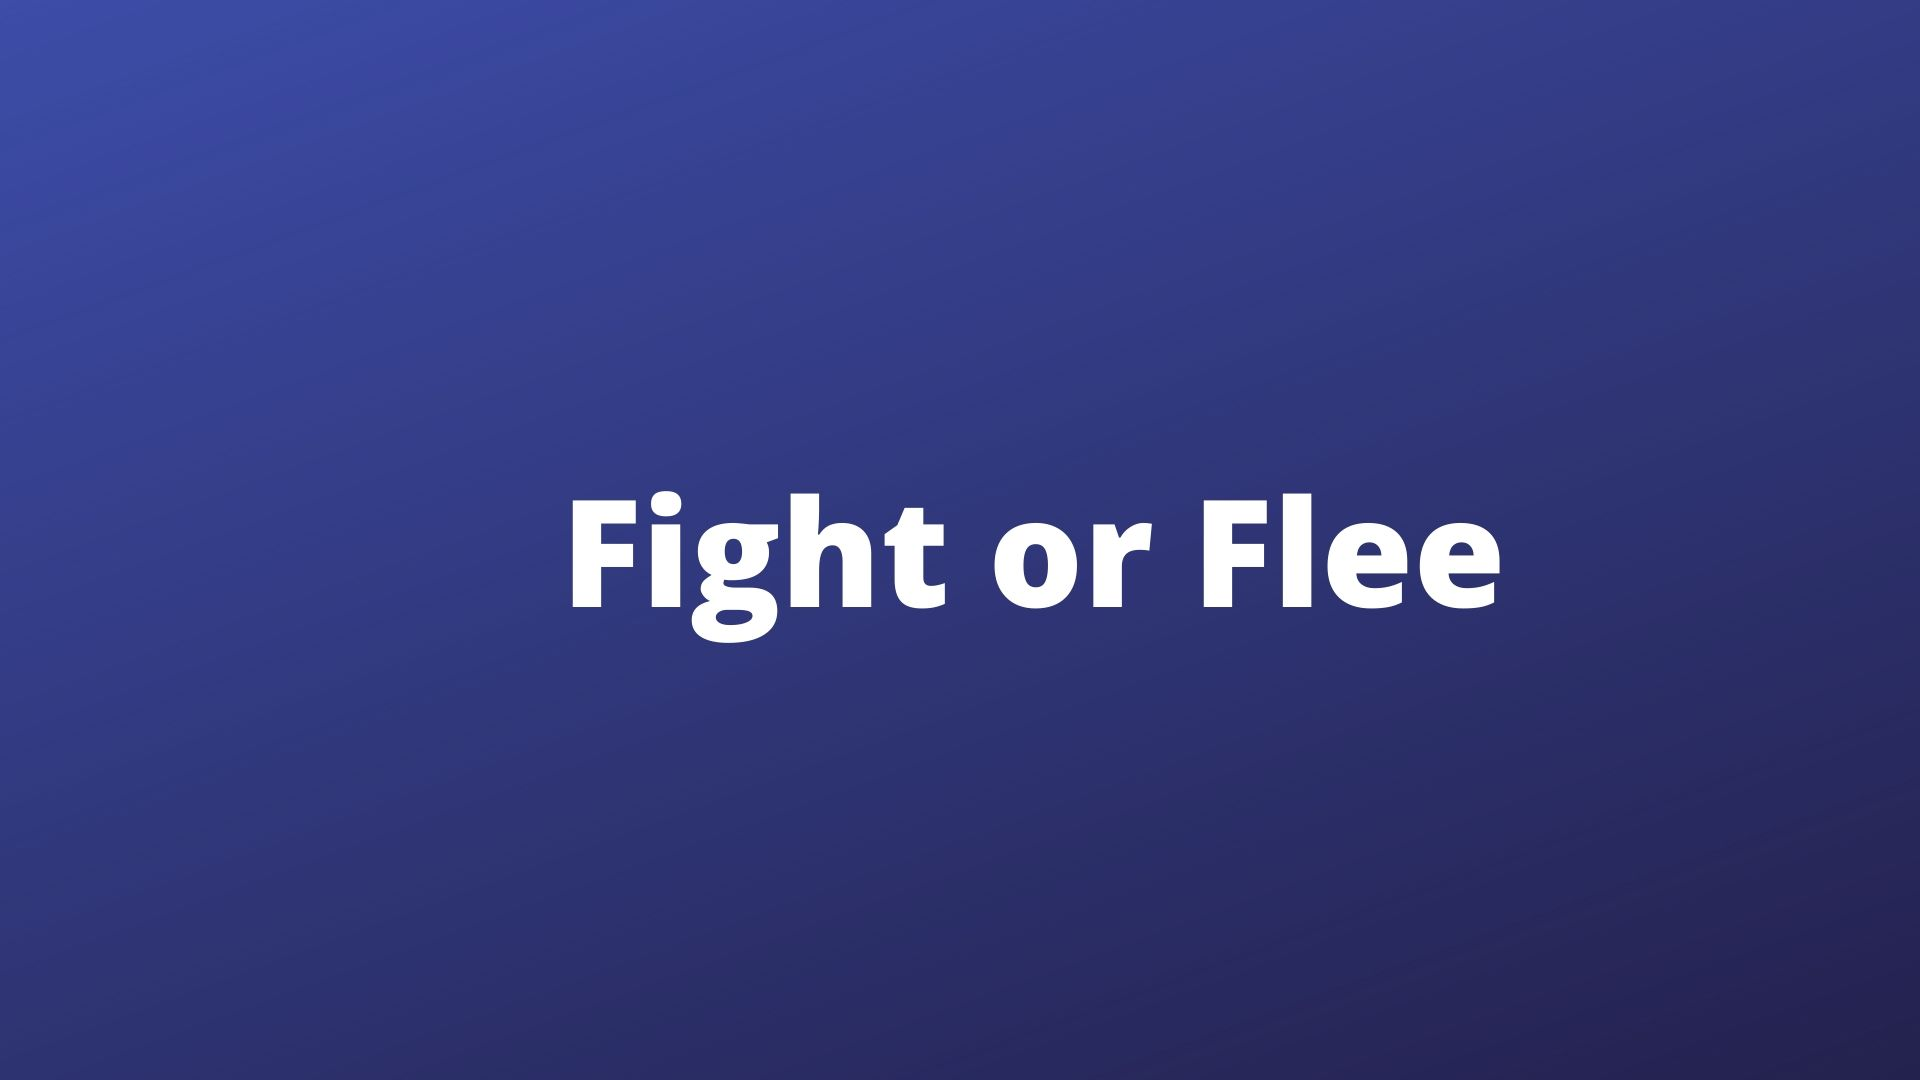 fight or flee public toilets